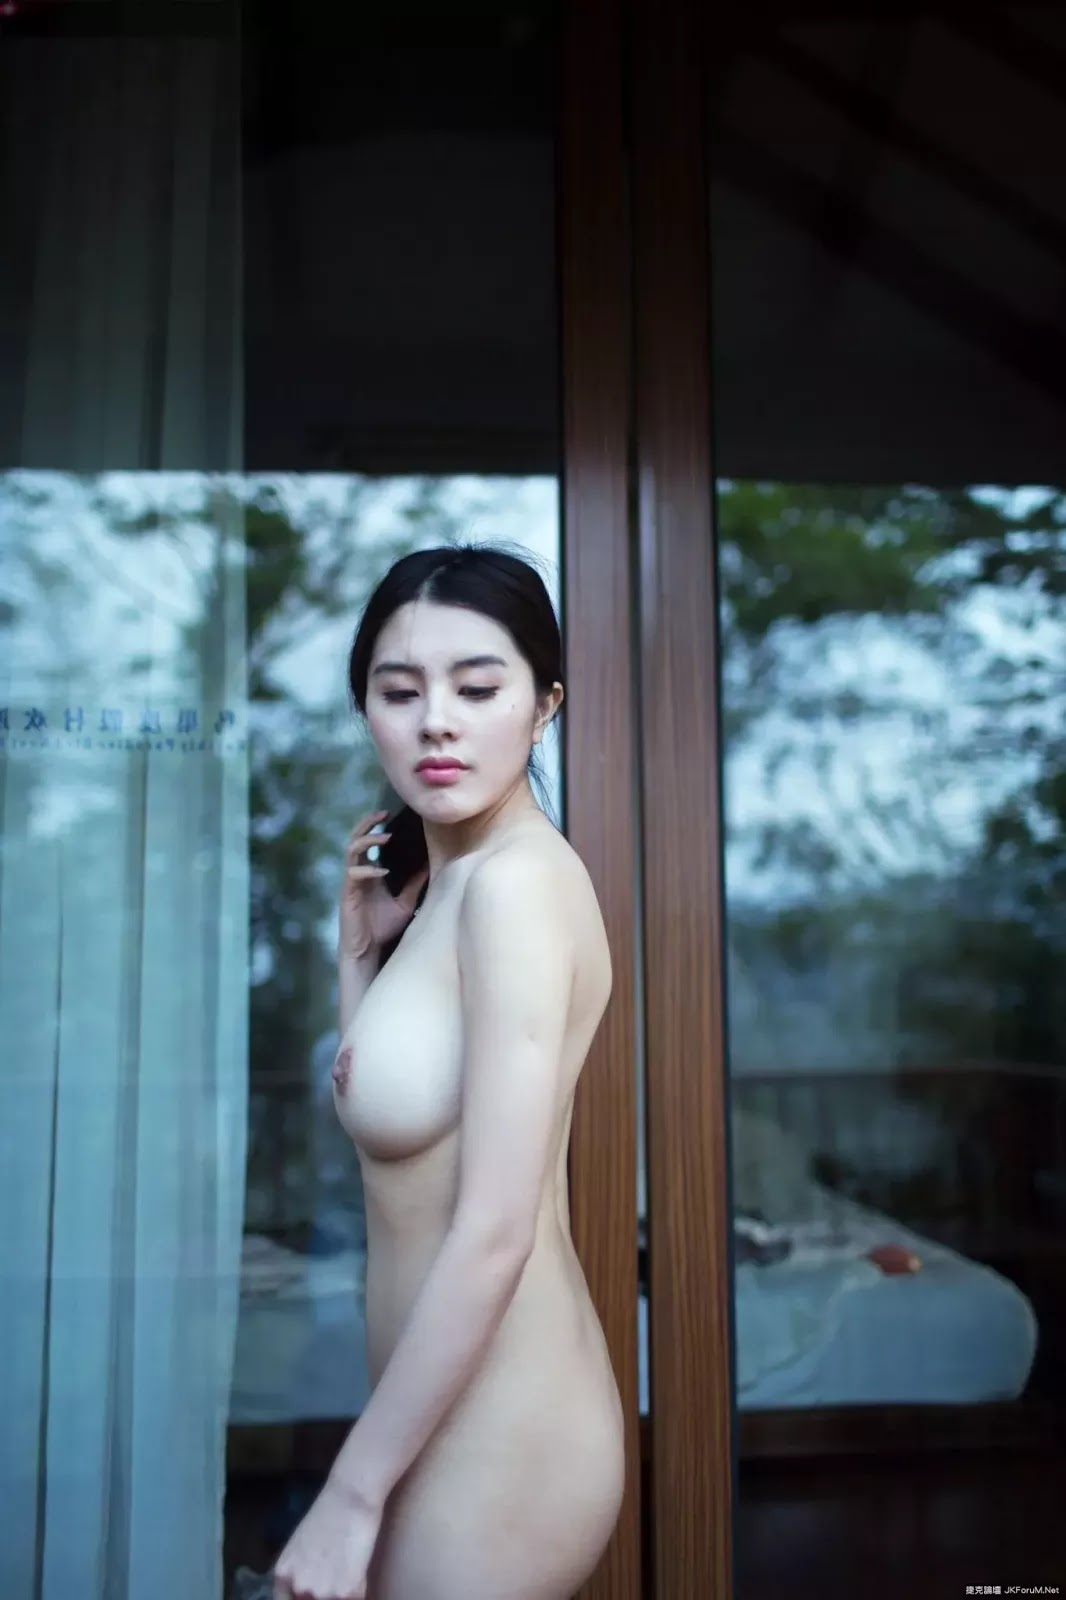 Chen Chih Ying Nude